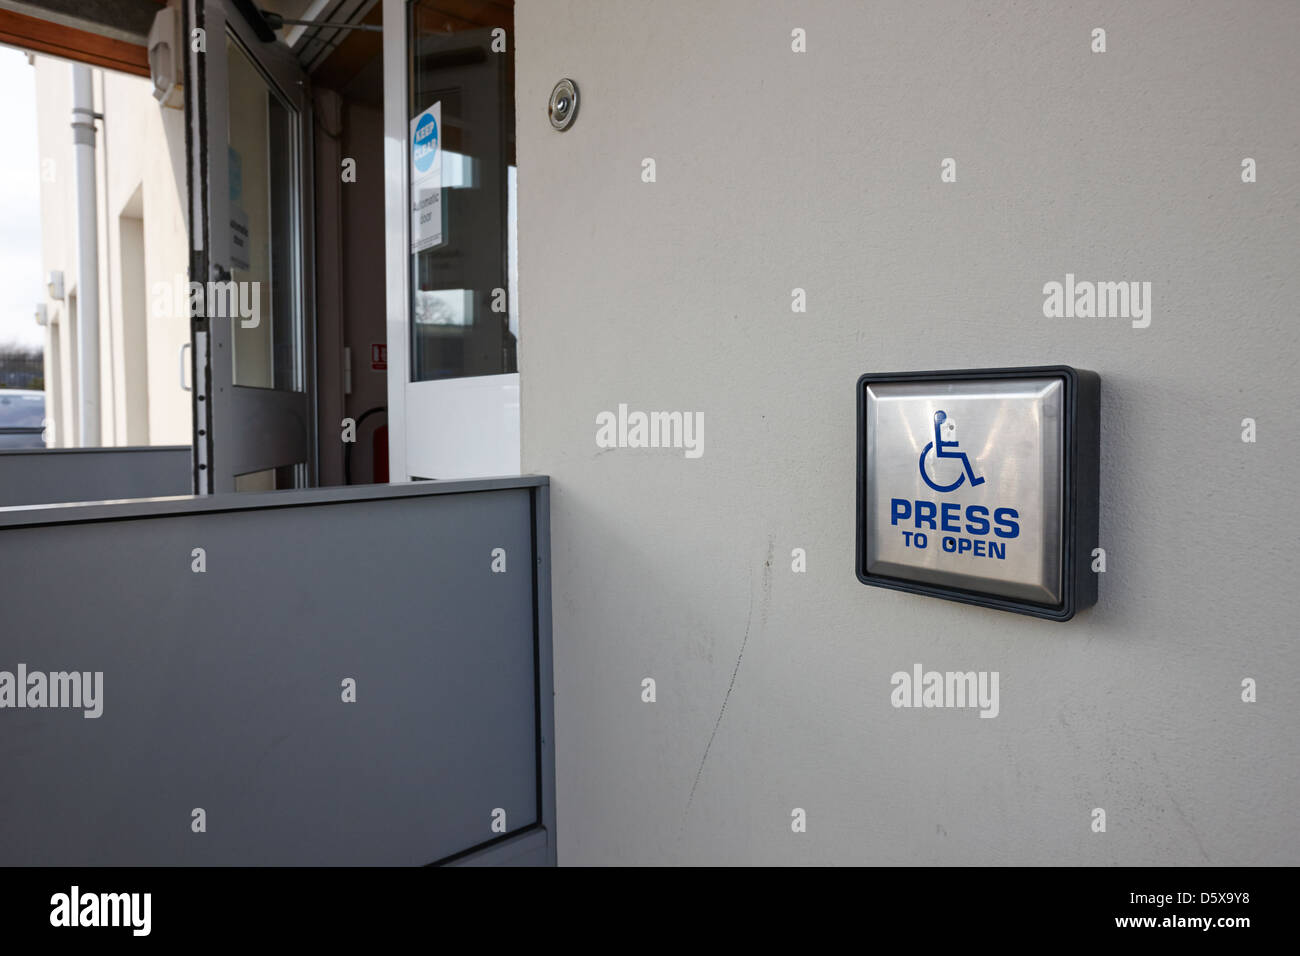 press to open disabled automatic door access to a public building northern ireland uk - Stock Image